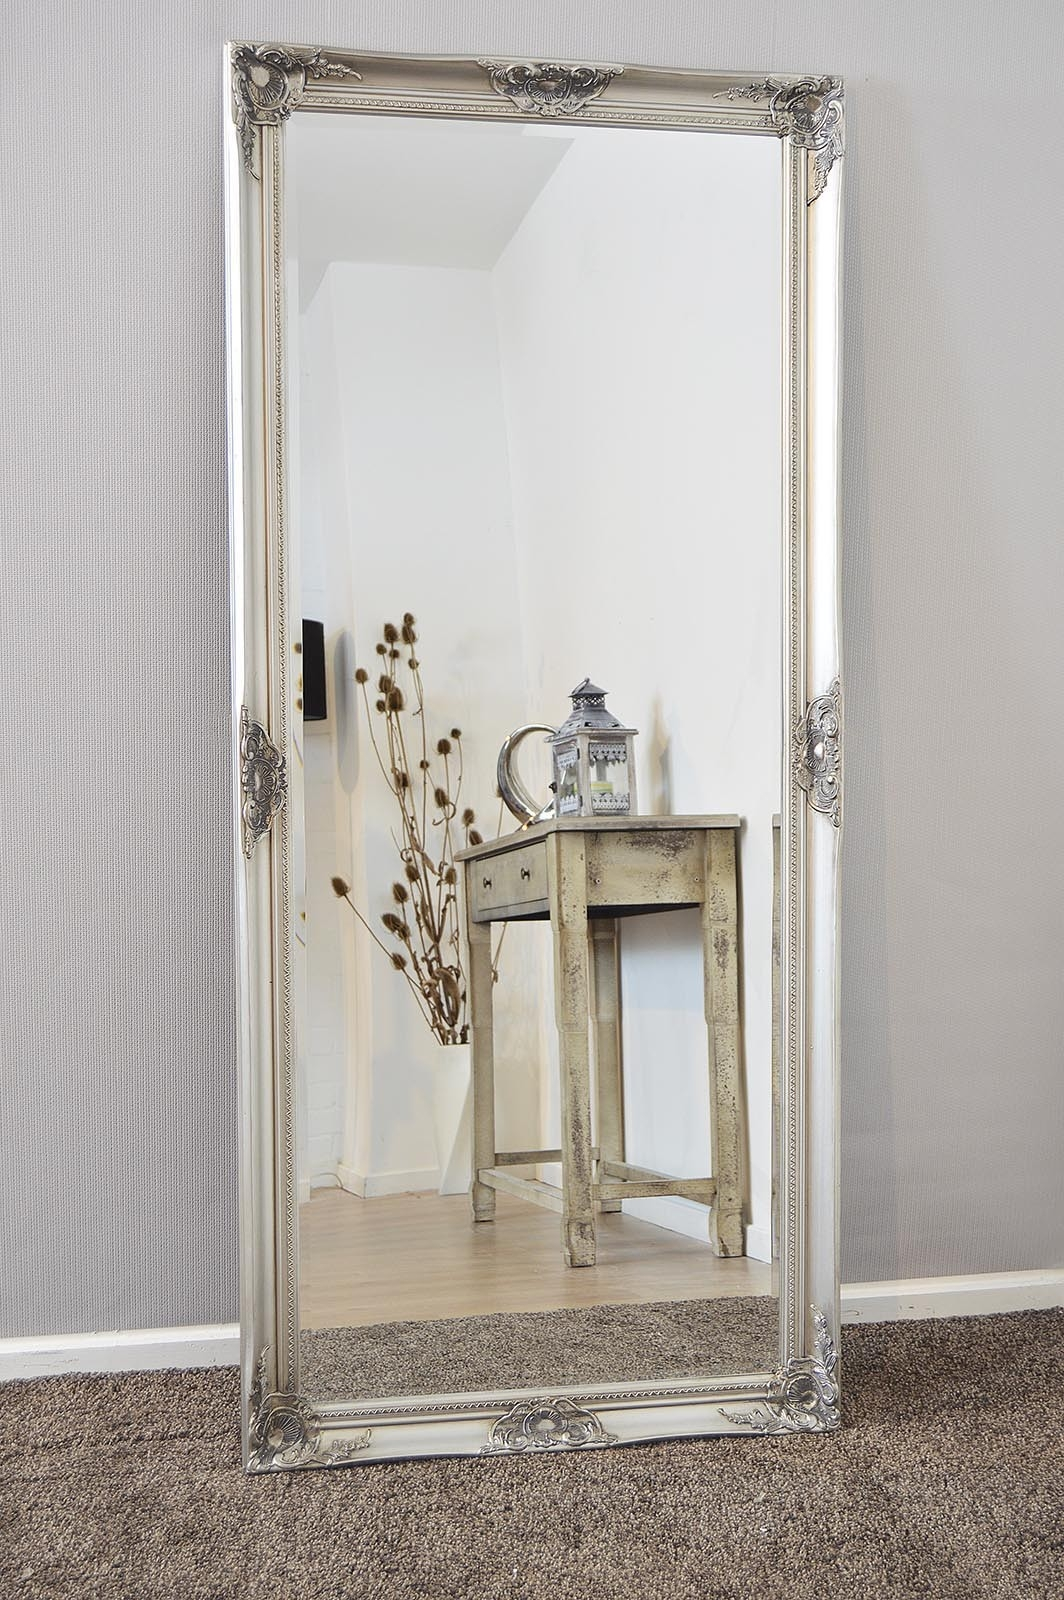 New Large Silver Decorative Shab Chic Wall Mirror 5ft3 X 2ft5 Throughout Shabby Chic Wall Mirror (View 7 of 15)